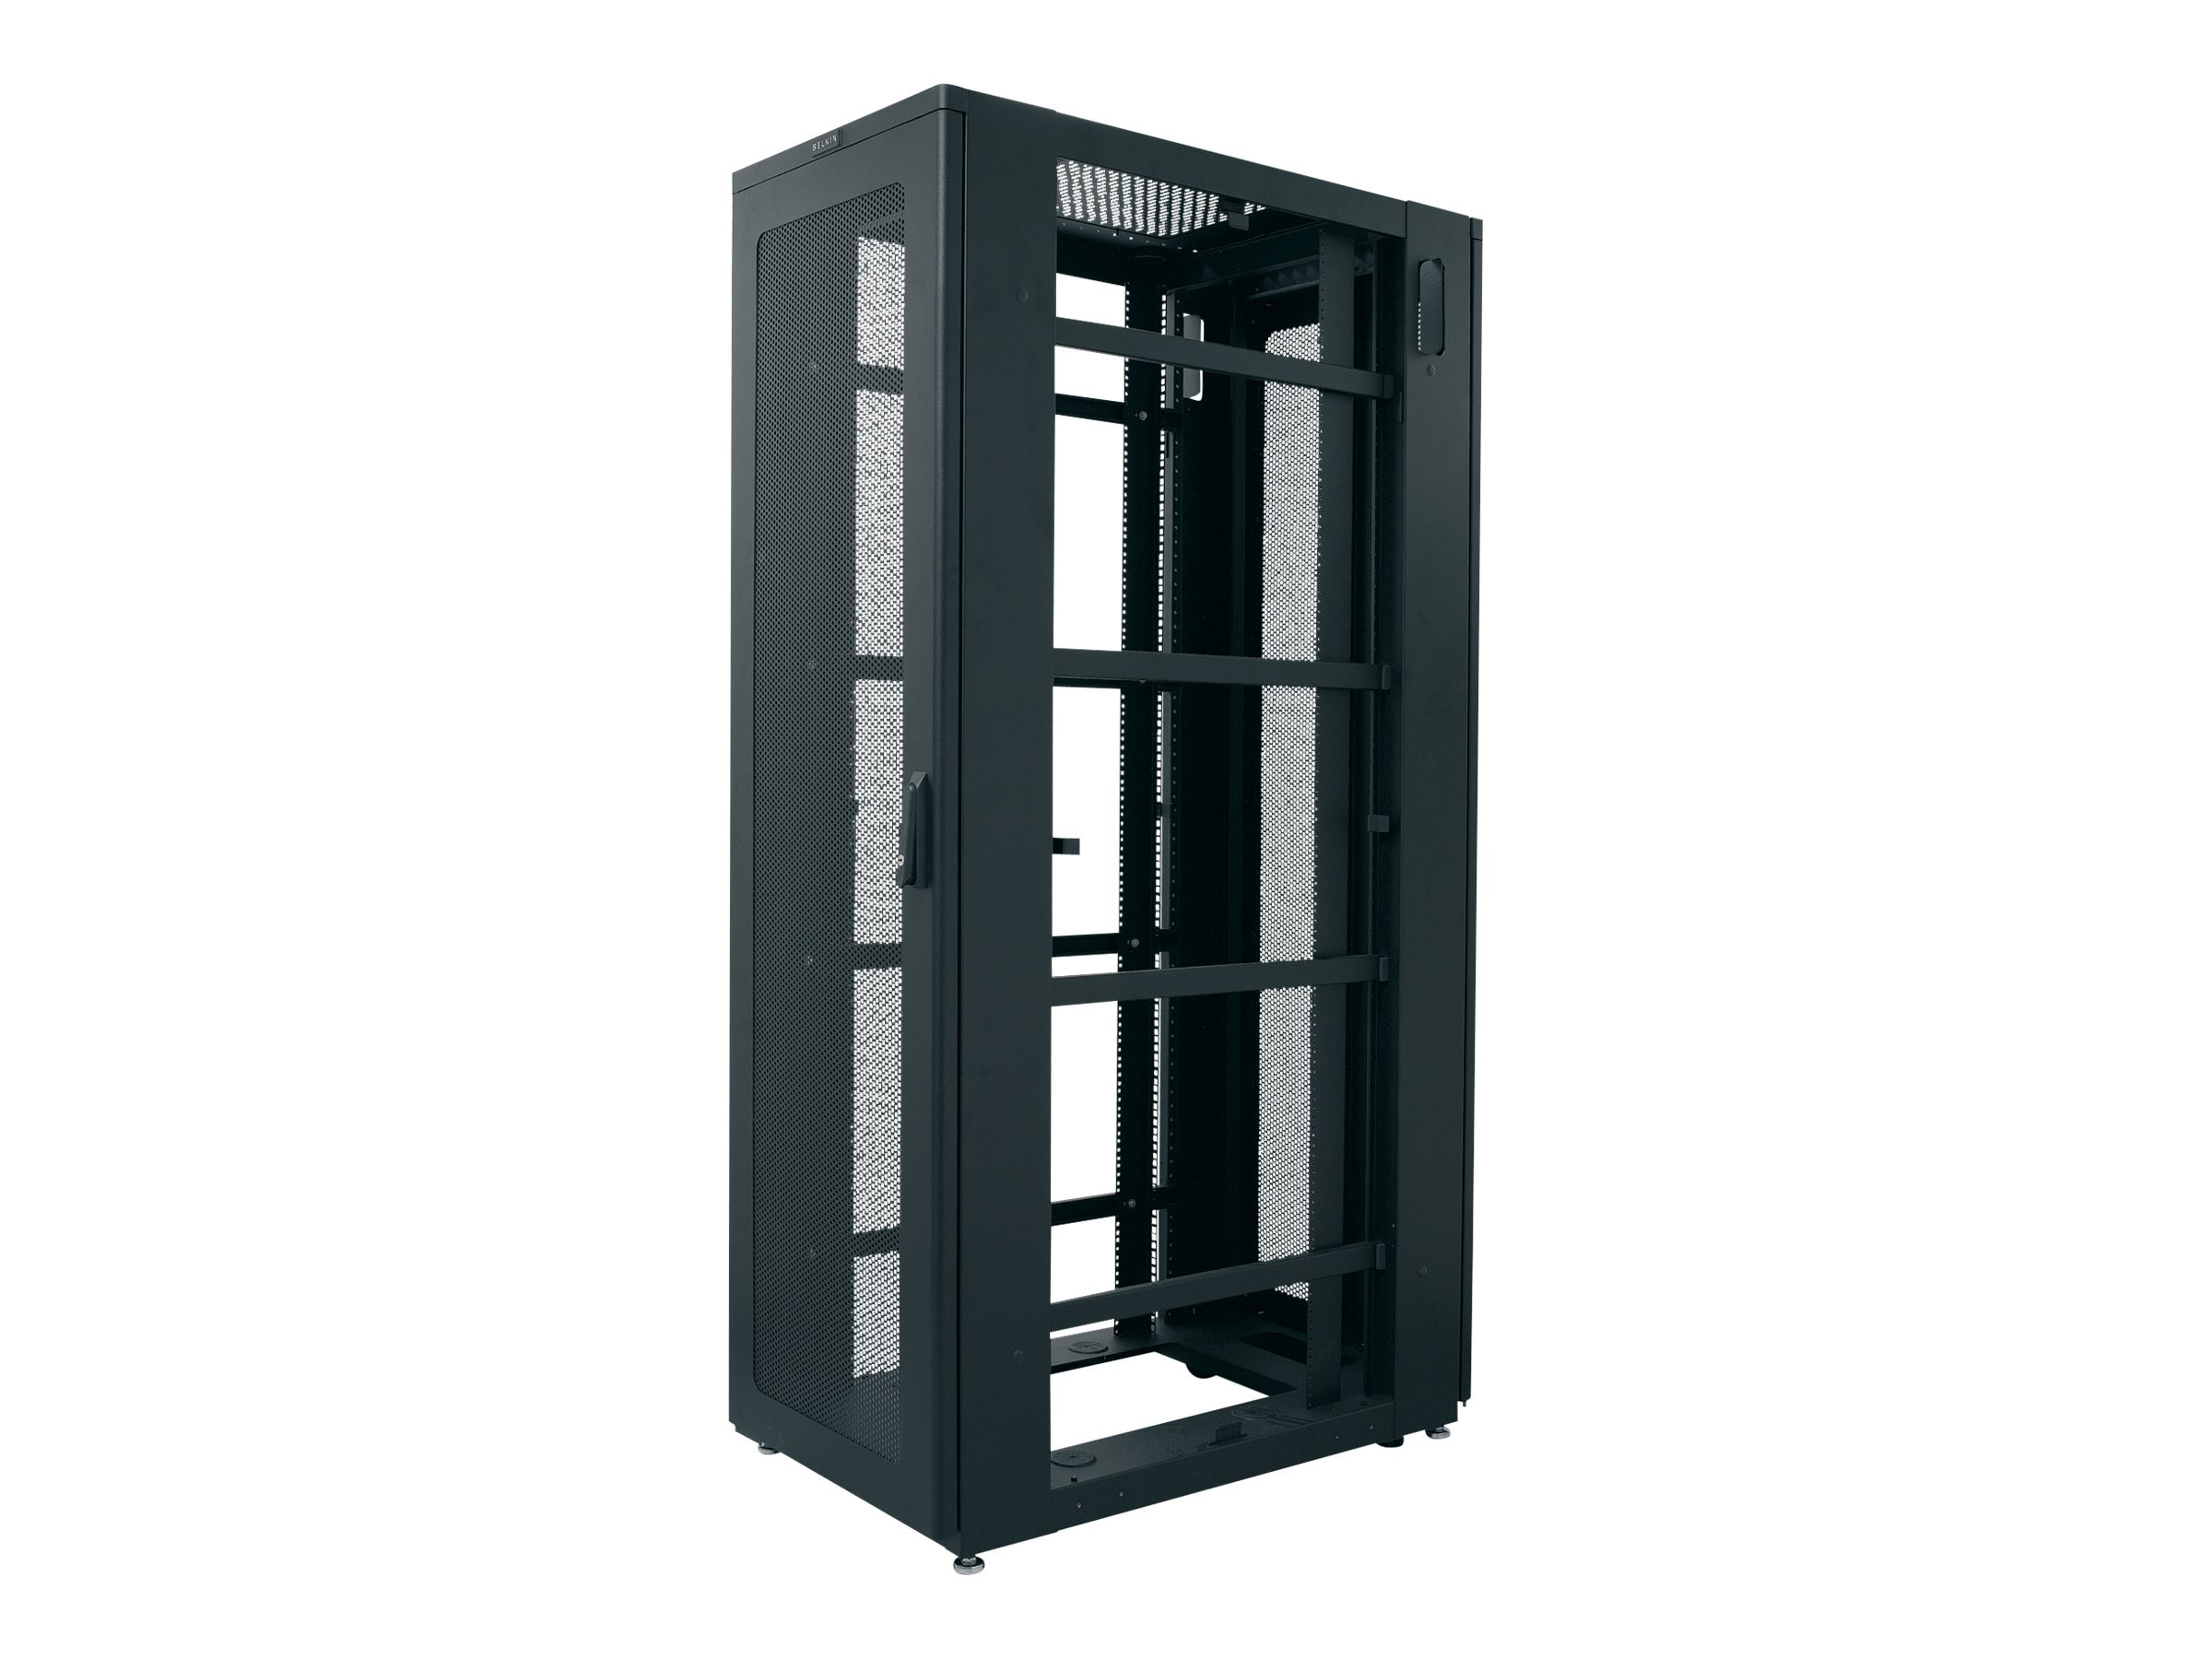 Belkin 42U Premium Enclosure without Side Panels, RK1001, 5599833, Racks & Cabinets